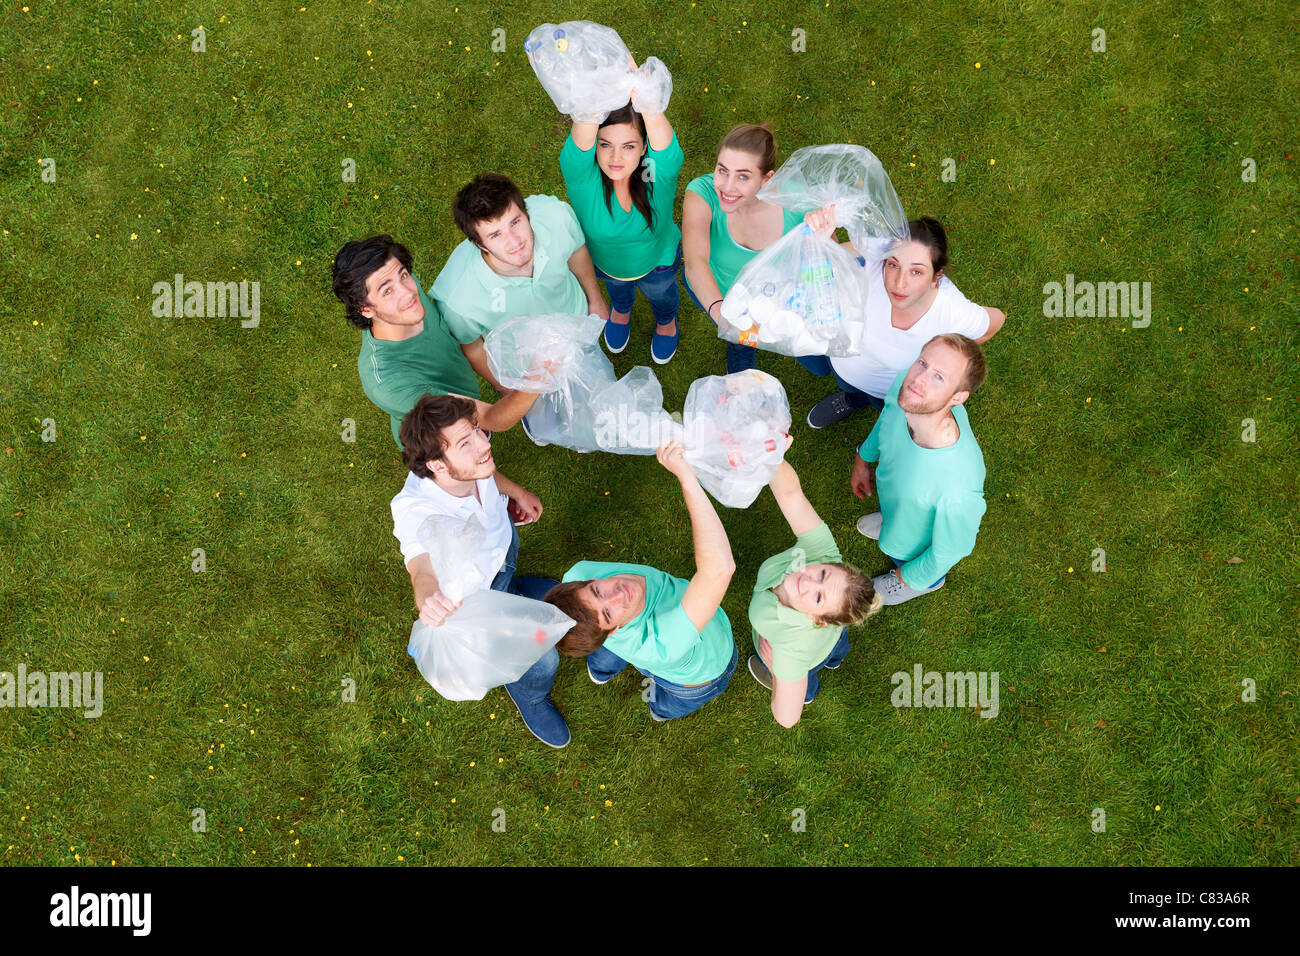 People holding garbage bags on grass - Stock Image